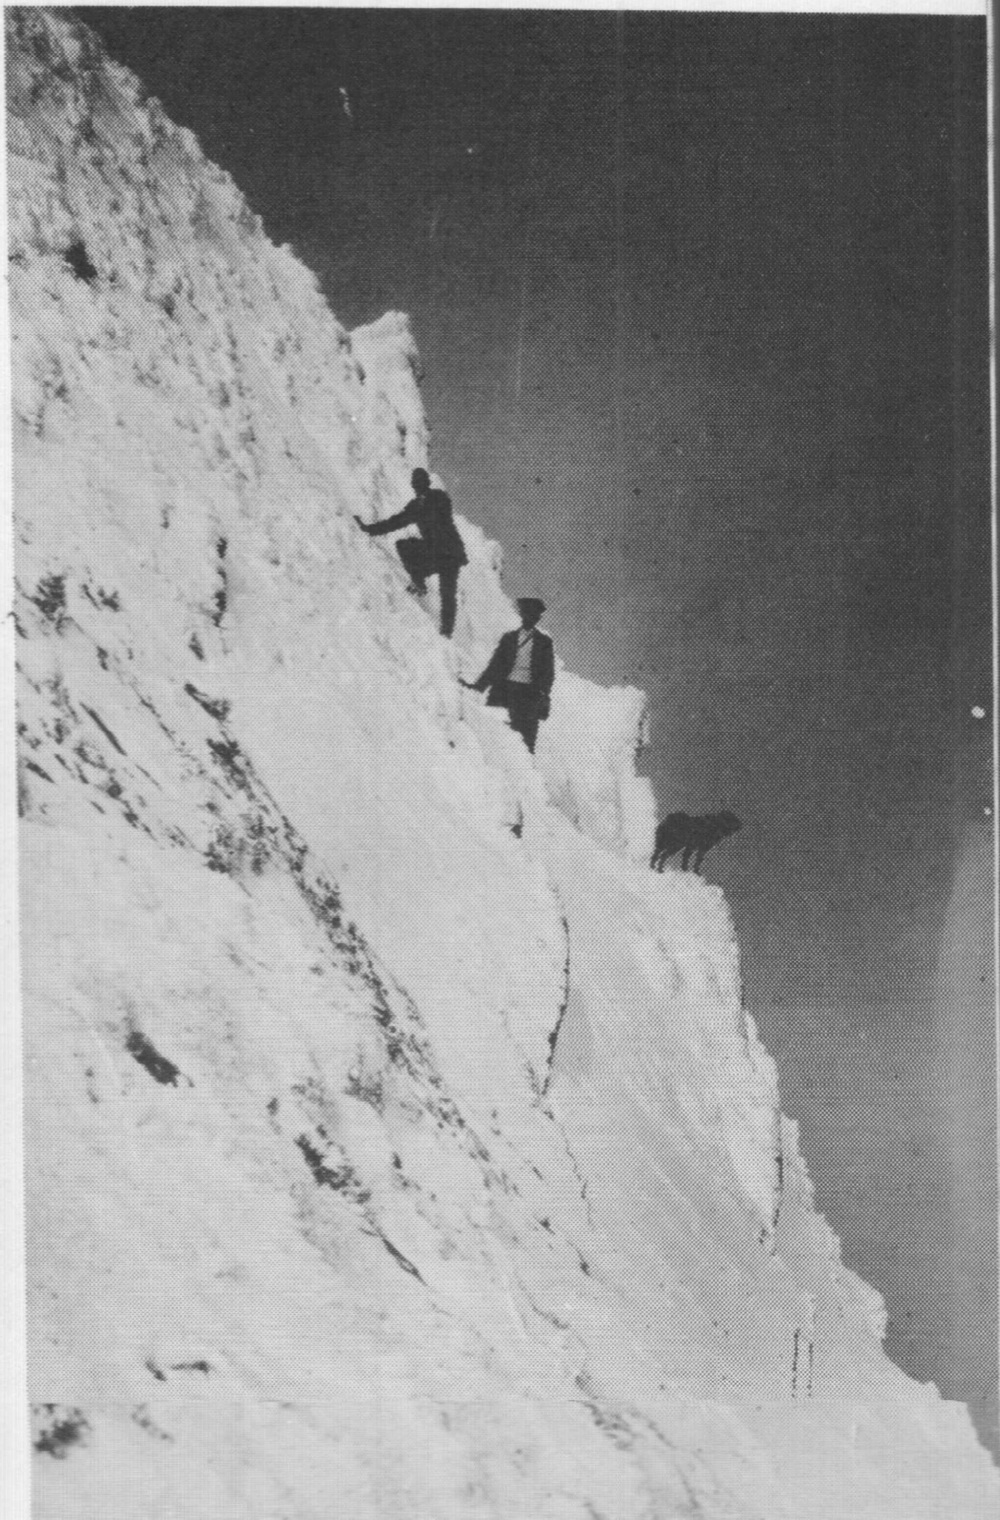 Climbers and dog. Mt Feathertop 25/8/1911. Photo prob by either R. M. Bowie or Jim Tobias